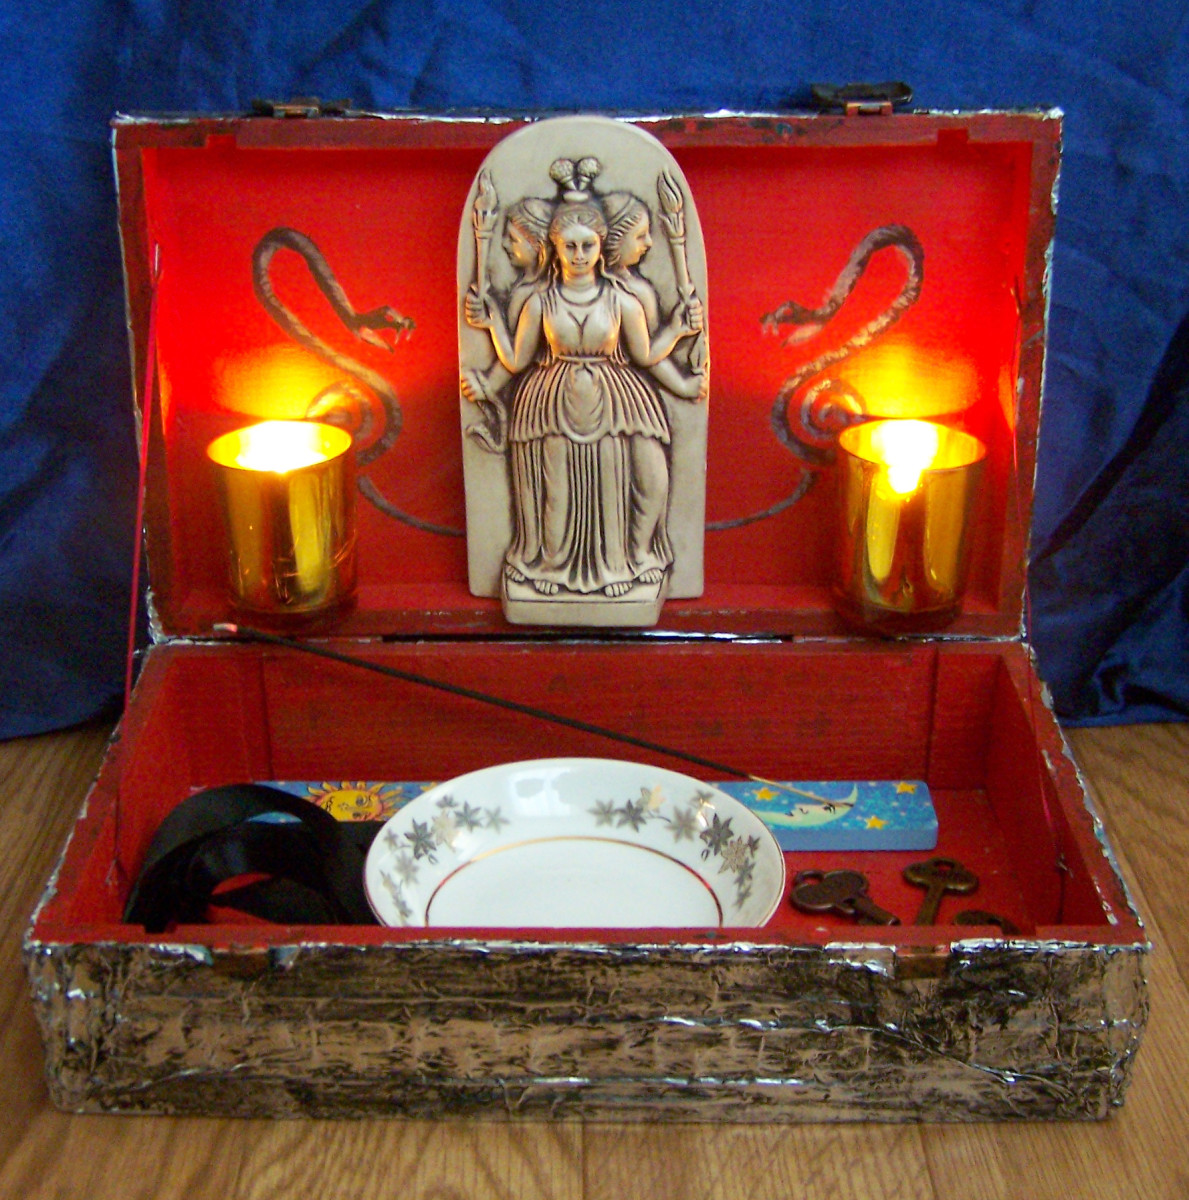 How to Make Your Own Hidden/Portable Shrine